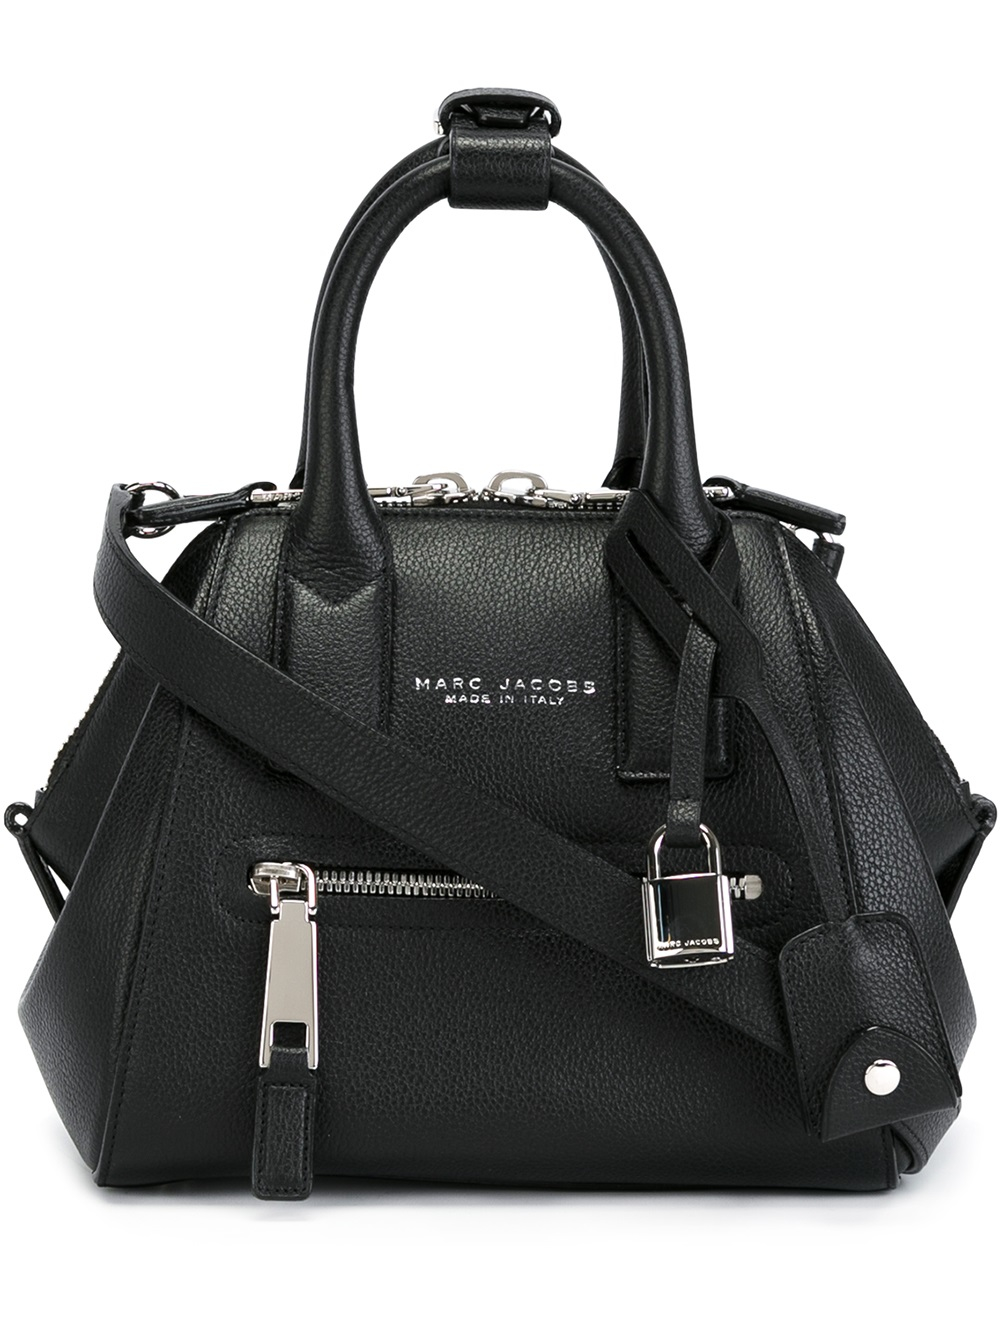 Marc Jacobs Mini Incognito Bag In Black Lyst